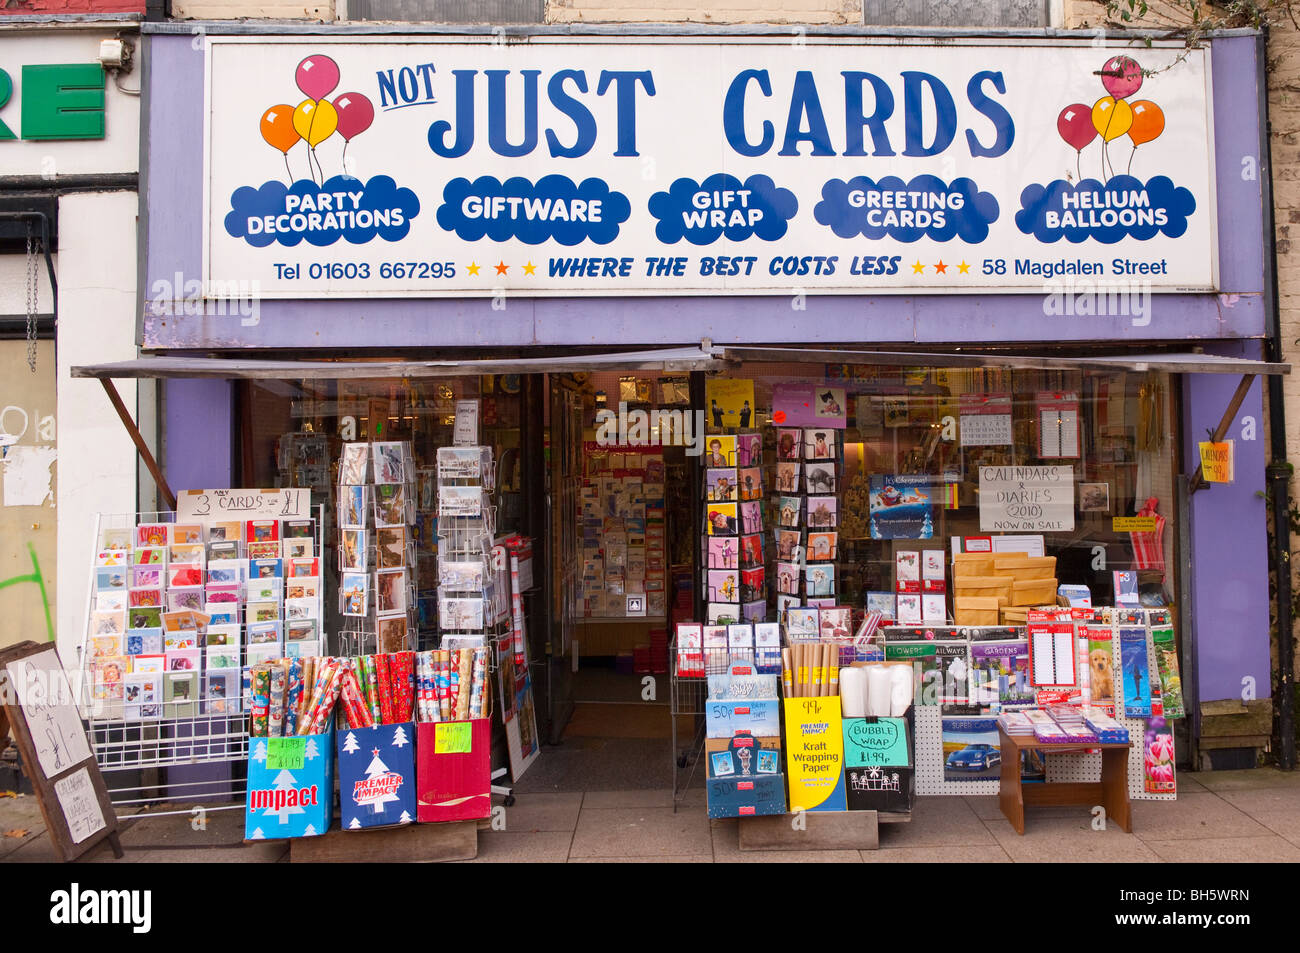 The just cards shop store in norwich norfolk england britain the just cards shop store in norwich norfolk england britain uk kristyandbryce Choice Image